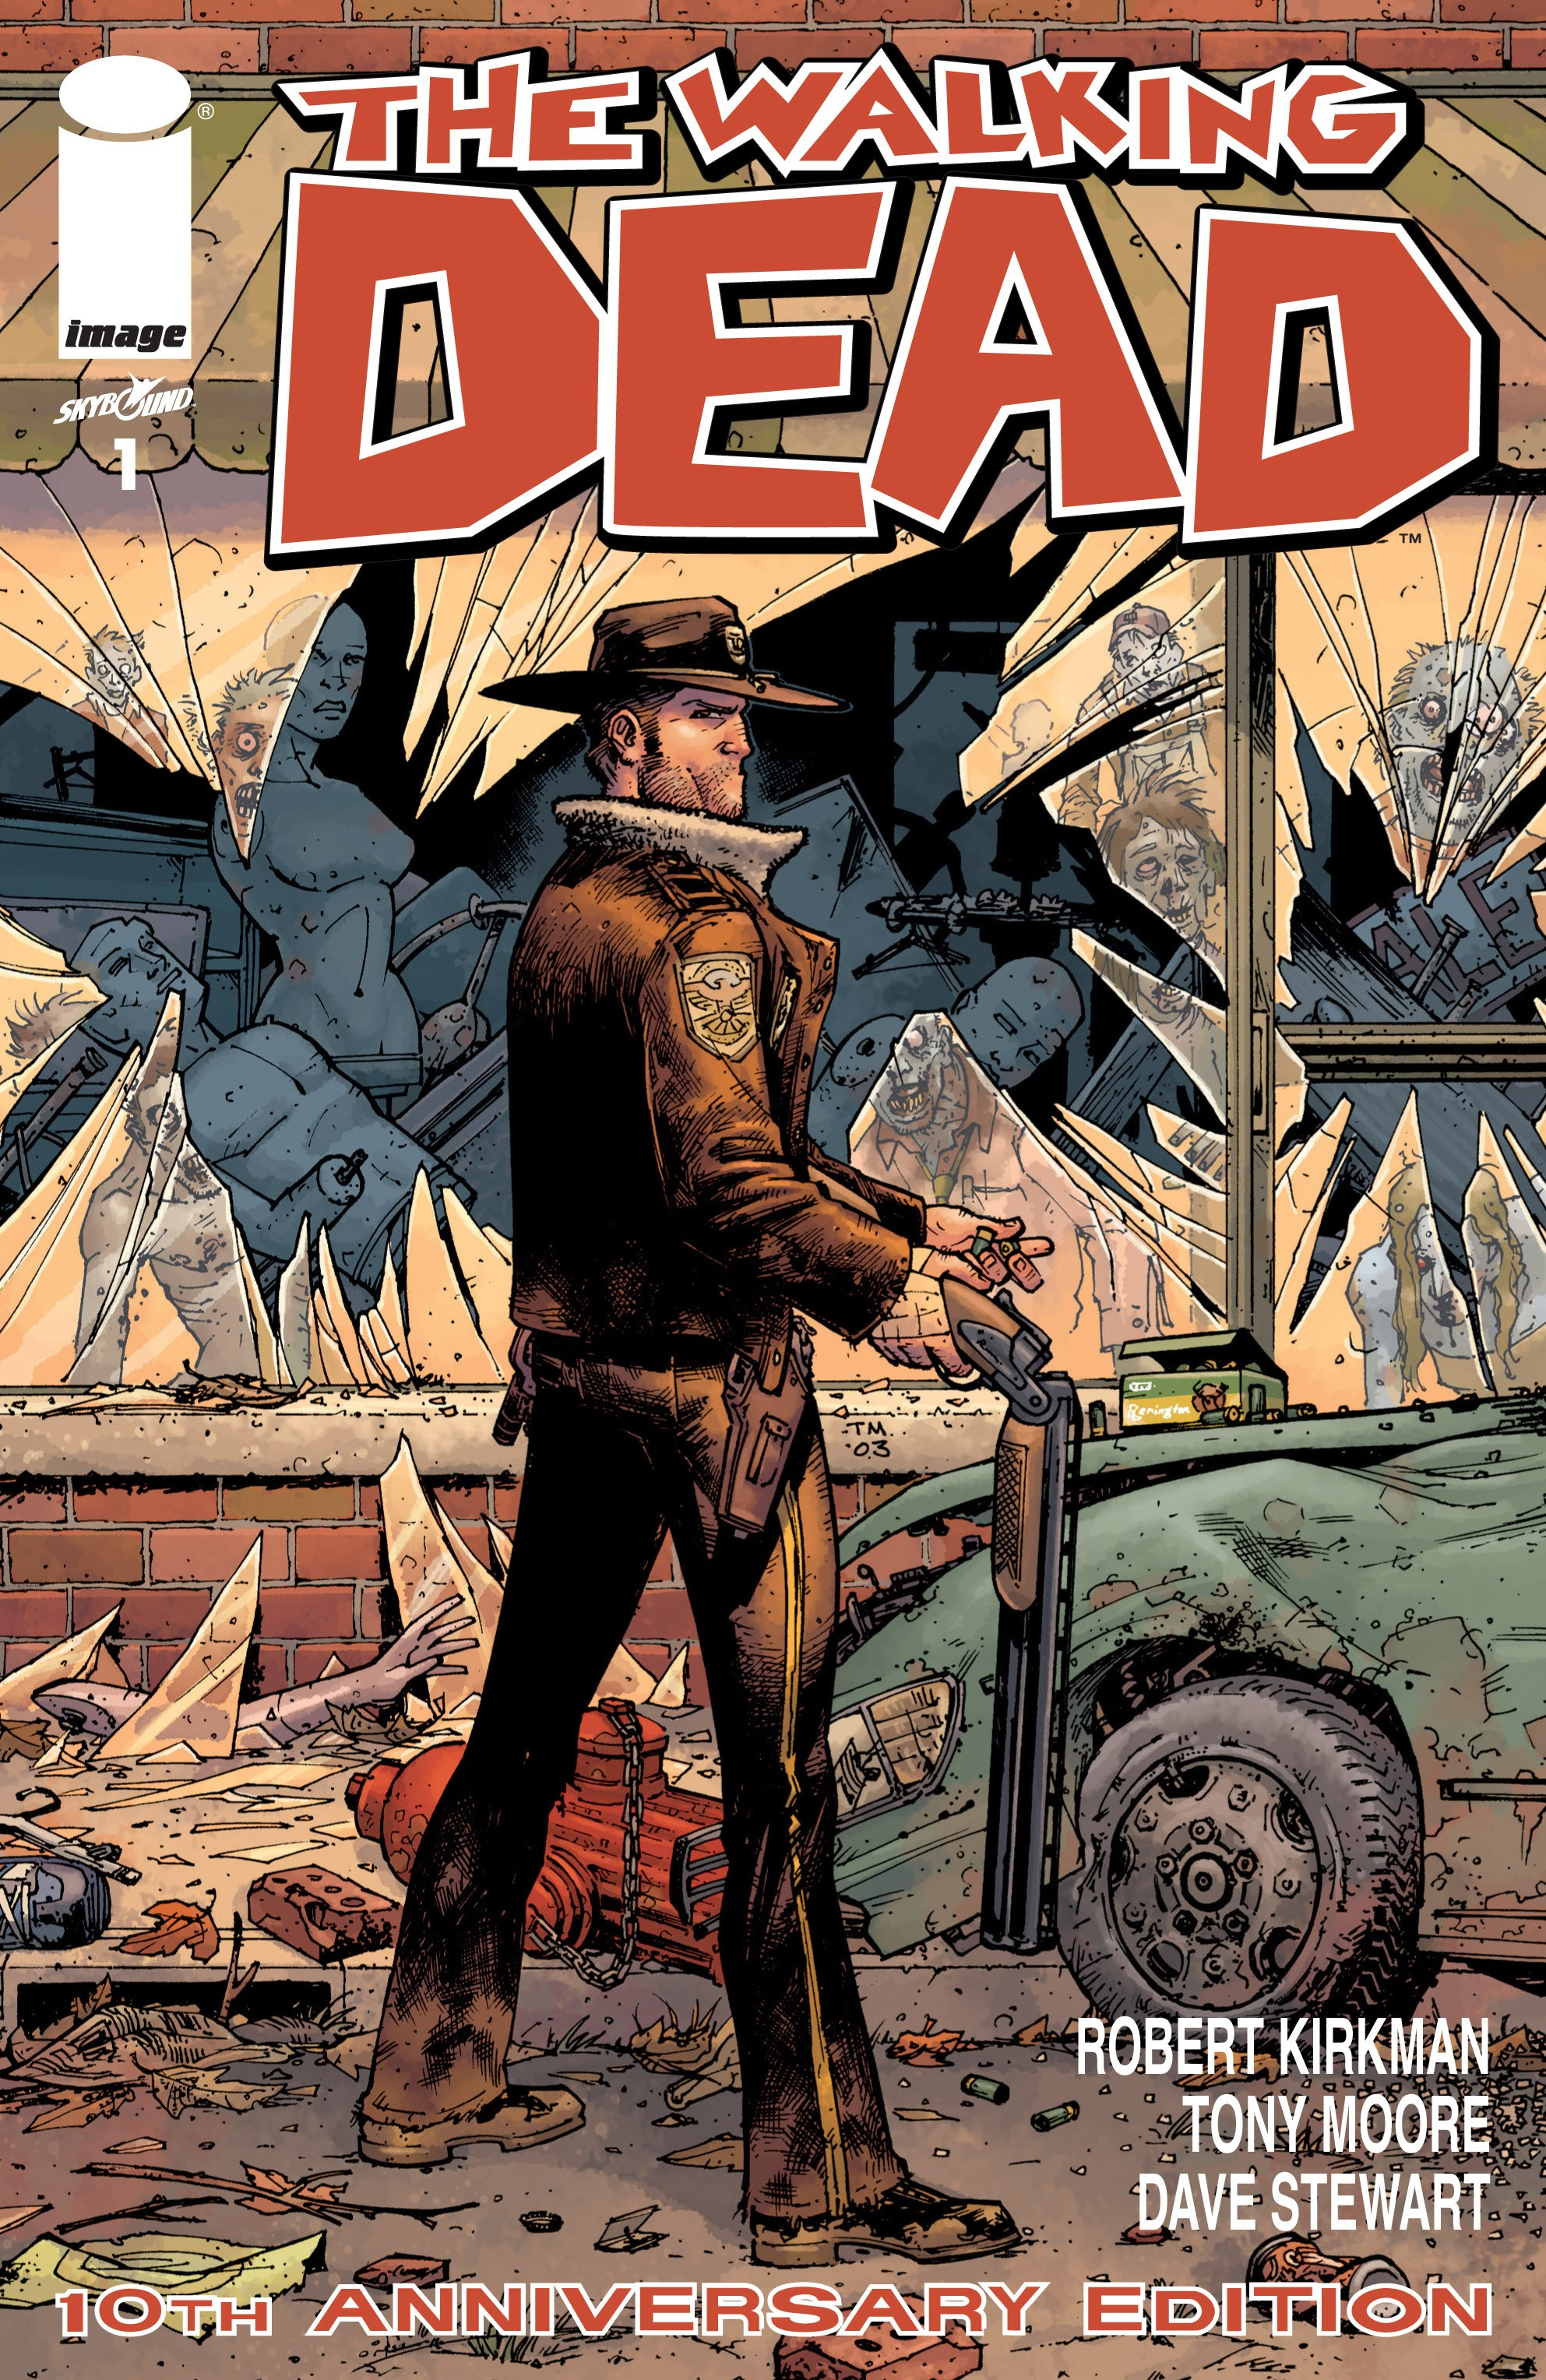 The Walking Dead 10th Anniversary Edition Full Page 1